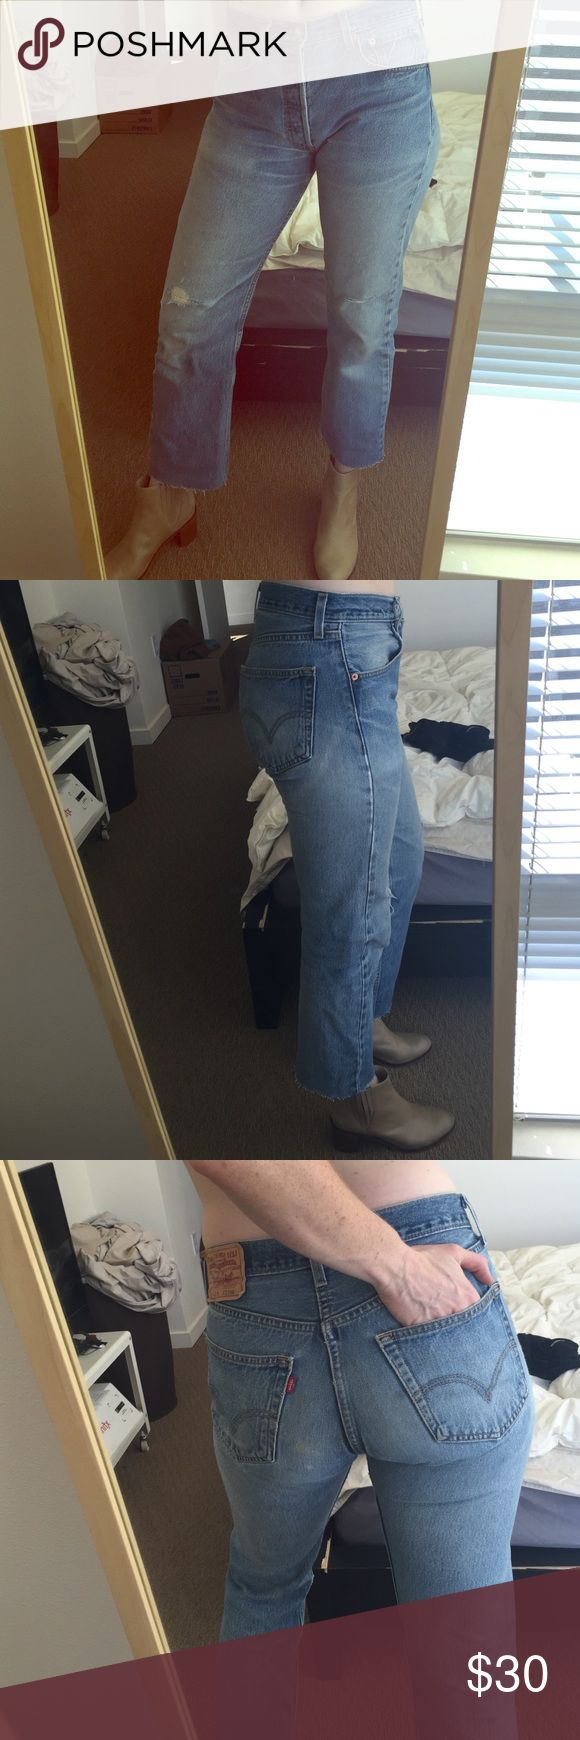 """Vintage Levi's cropped 501 Vintage high rise button fly cropped destroyed Levi's 501s. Laying flat waist is 15"""" across, inseam is 27"""" front rise 11"""". I am a 4/6, usual 27/28 in denim for reference, and These are a size big on me once worn for a few hours. Good amount of authentic spots, rips etc. raw hem. 100% cotton. Bought from high end vintage shop in Portland OR. Levi's Jeans Ankle & Cropped"""